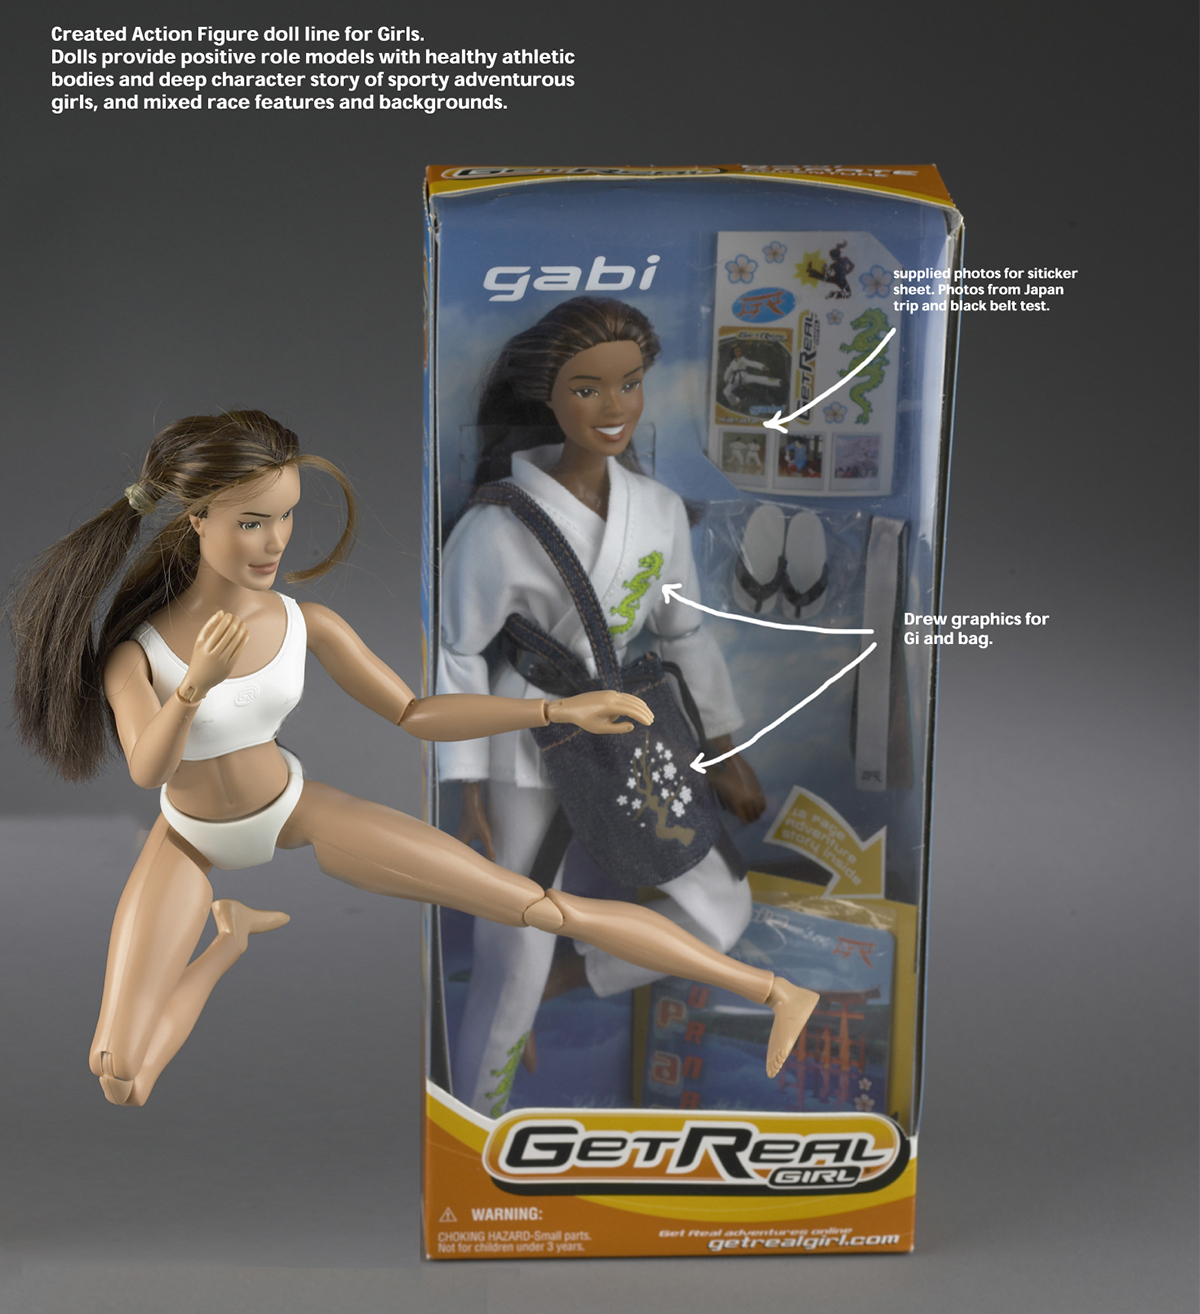 Start Up: Get Real Girl Action Doll Line on Behance